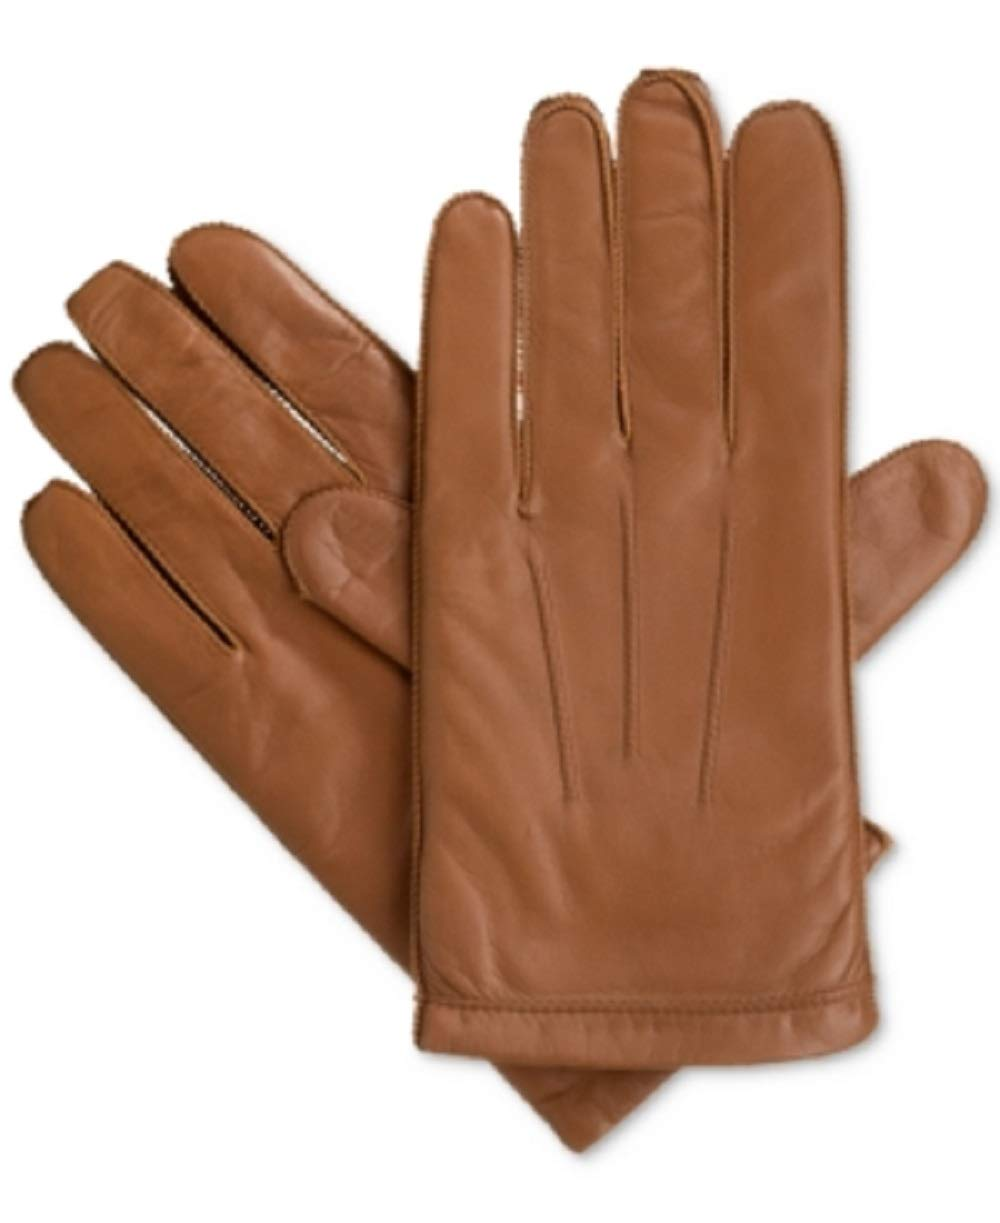 Isotoner Men's Smooth Leather smarTouch Gloves Tan Size Large